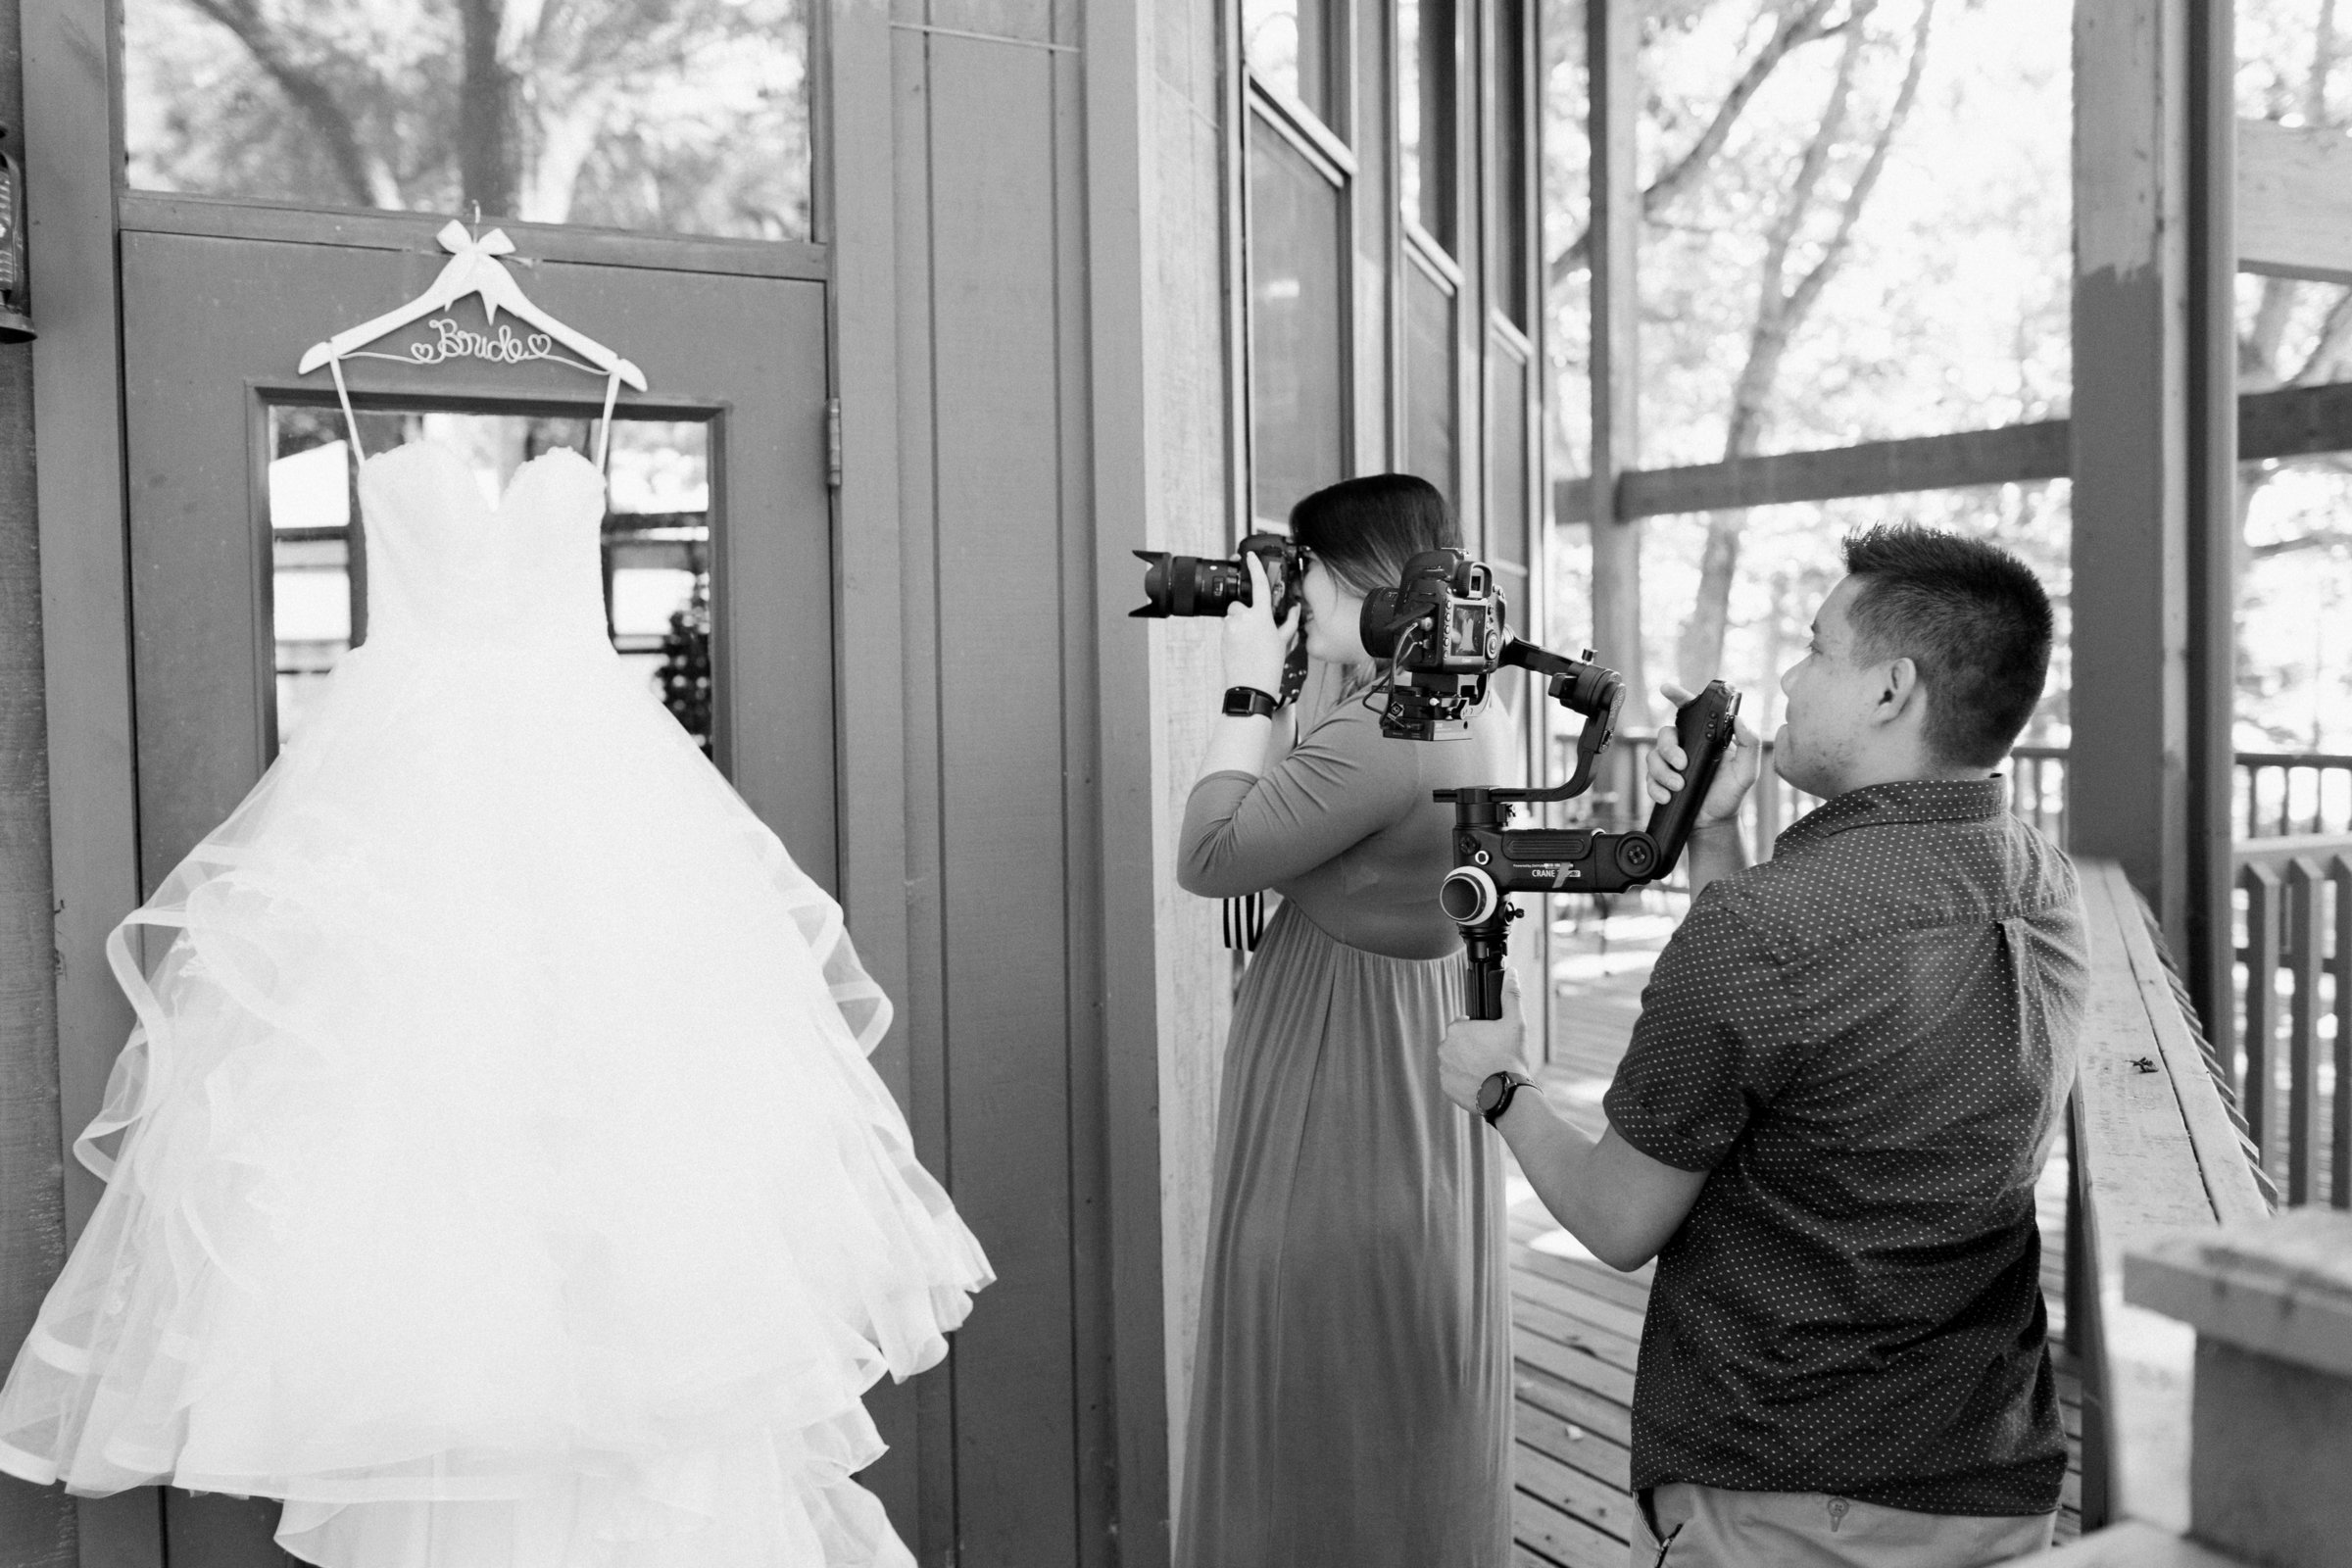 FEHRMAN_Getting Ready_Kalamazoo Wedding Photographer_Cynthia Boyle-123